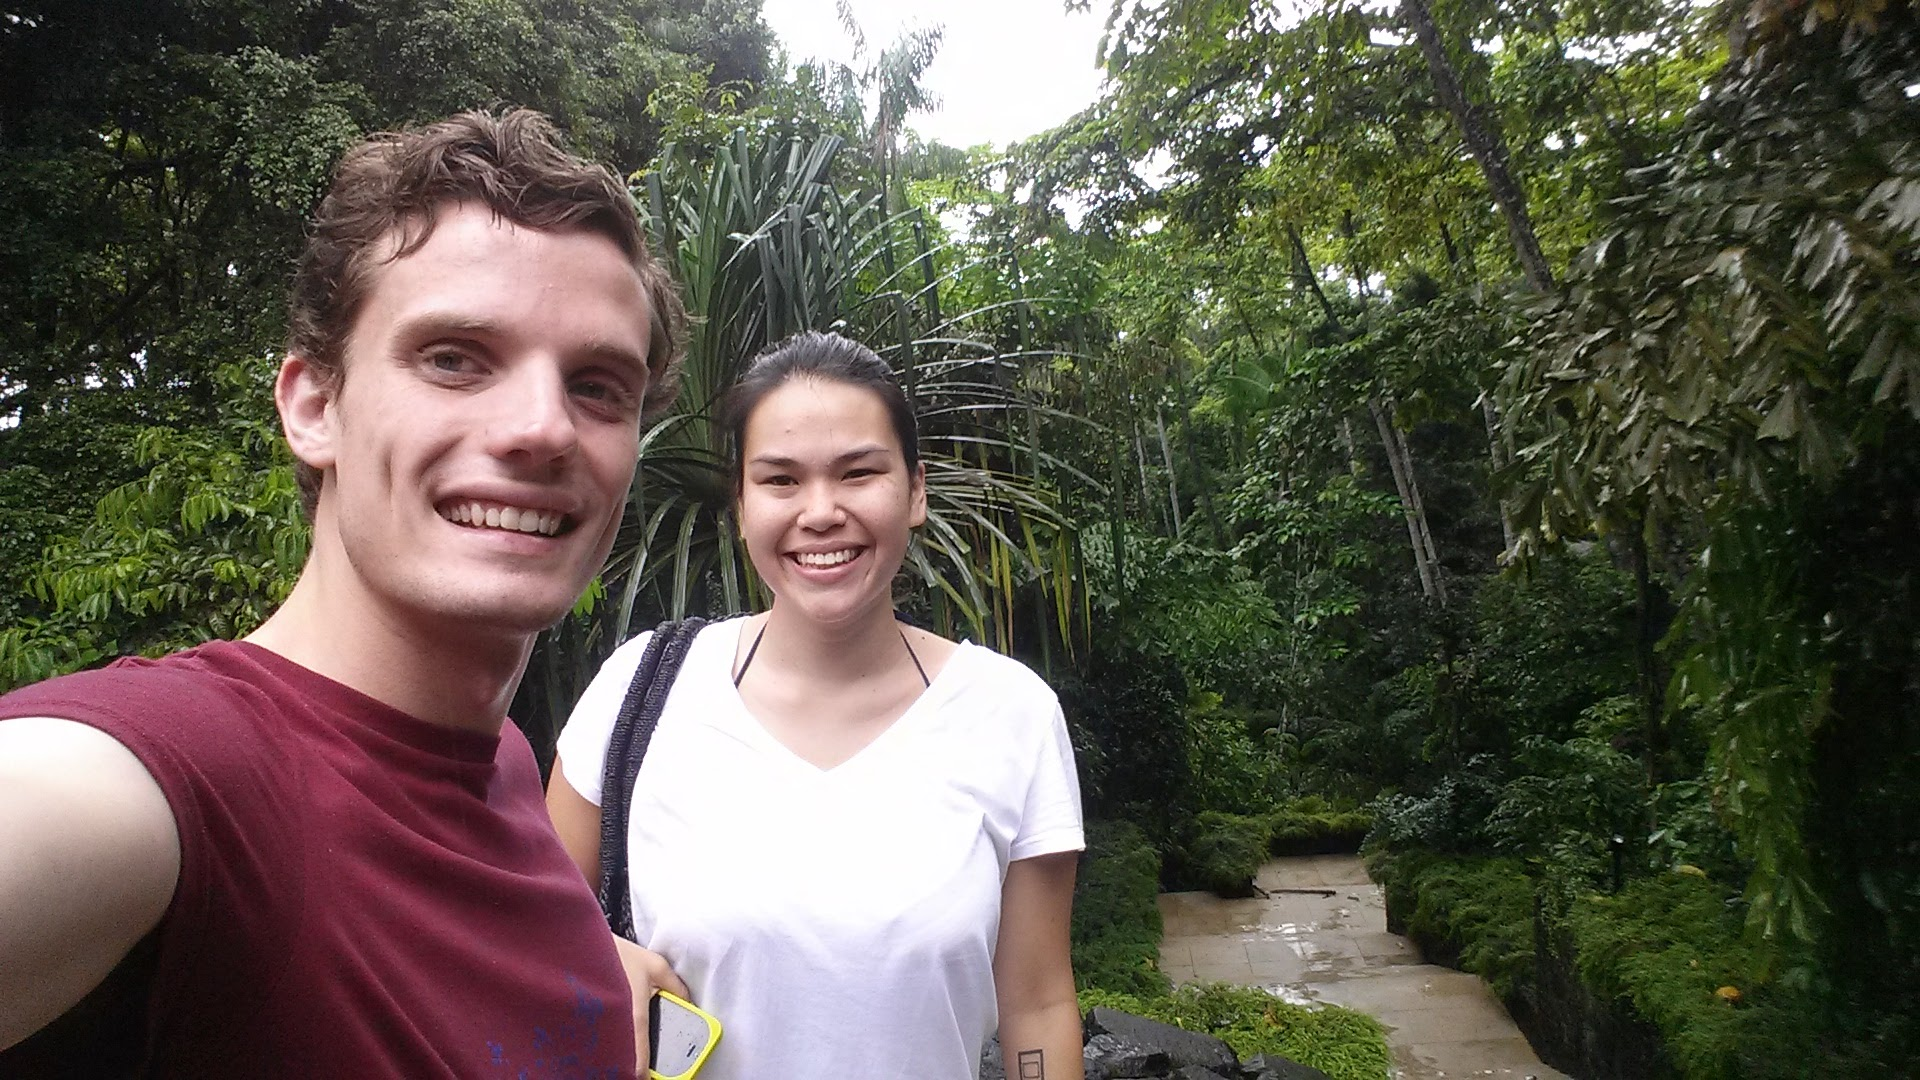 I came to stay for a month in Singapore. We got an airbnb and did a couple trips. Gill surprised me with a trip to the Datai in Langkawi on my birthday.